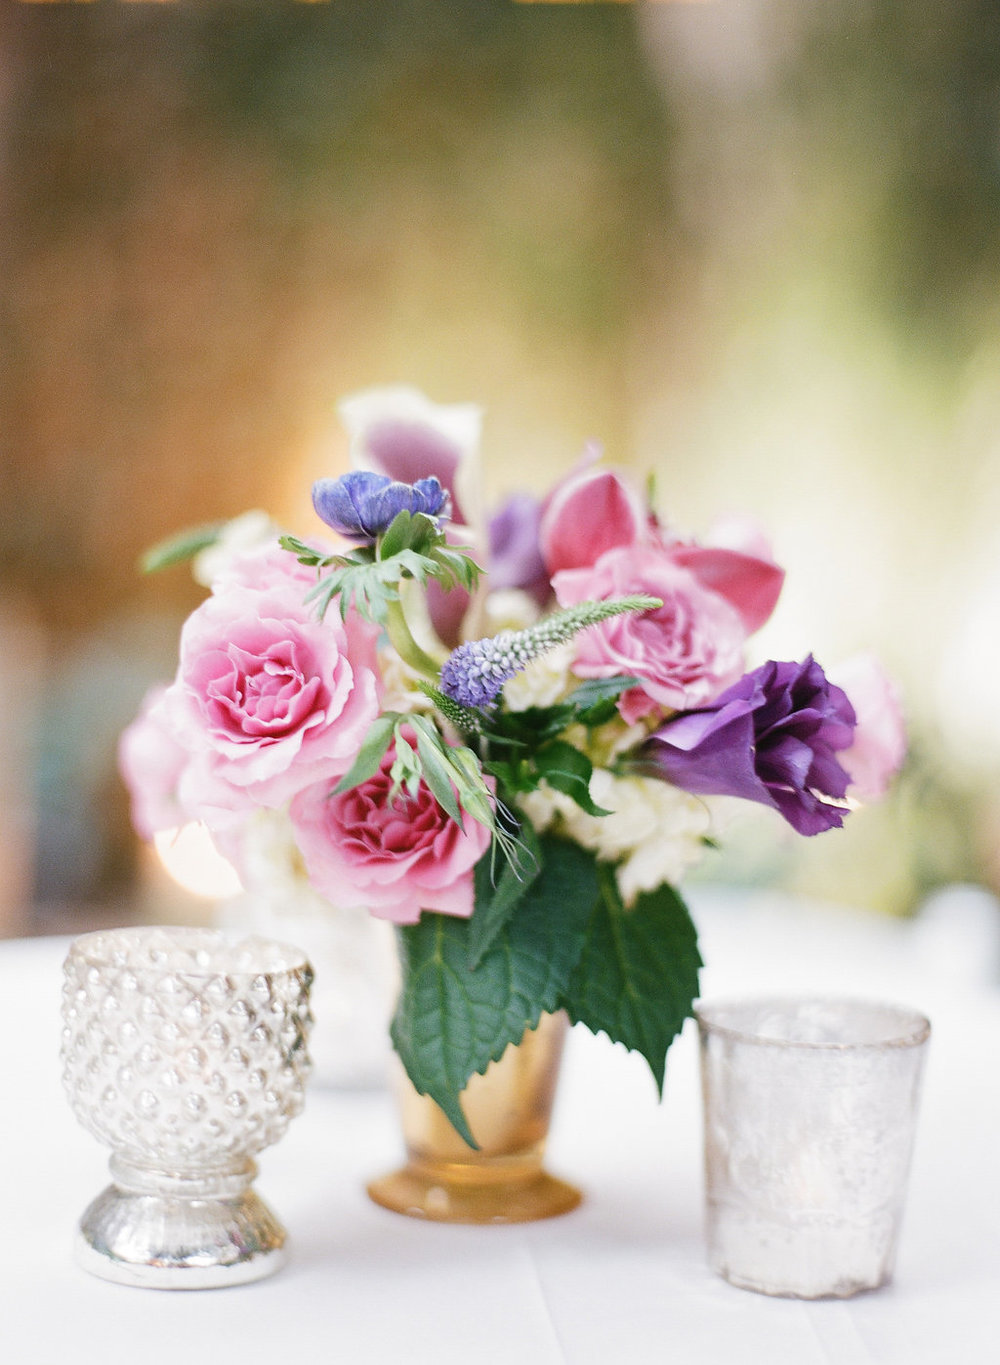 Purple and Violet cocktail table arrangements | This is what happens when a bride asks her guests to wear all white | Wedding En Blanc | Sapphire Events | Erika Parker Photography Montegut House | Luxury Wedding | Courtyard wedding | French Quarter Wedding | Luxe Wedding Details | Kim Starr Wise Florals